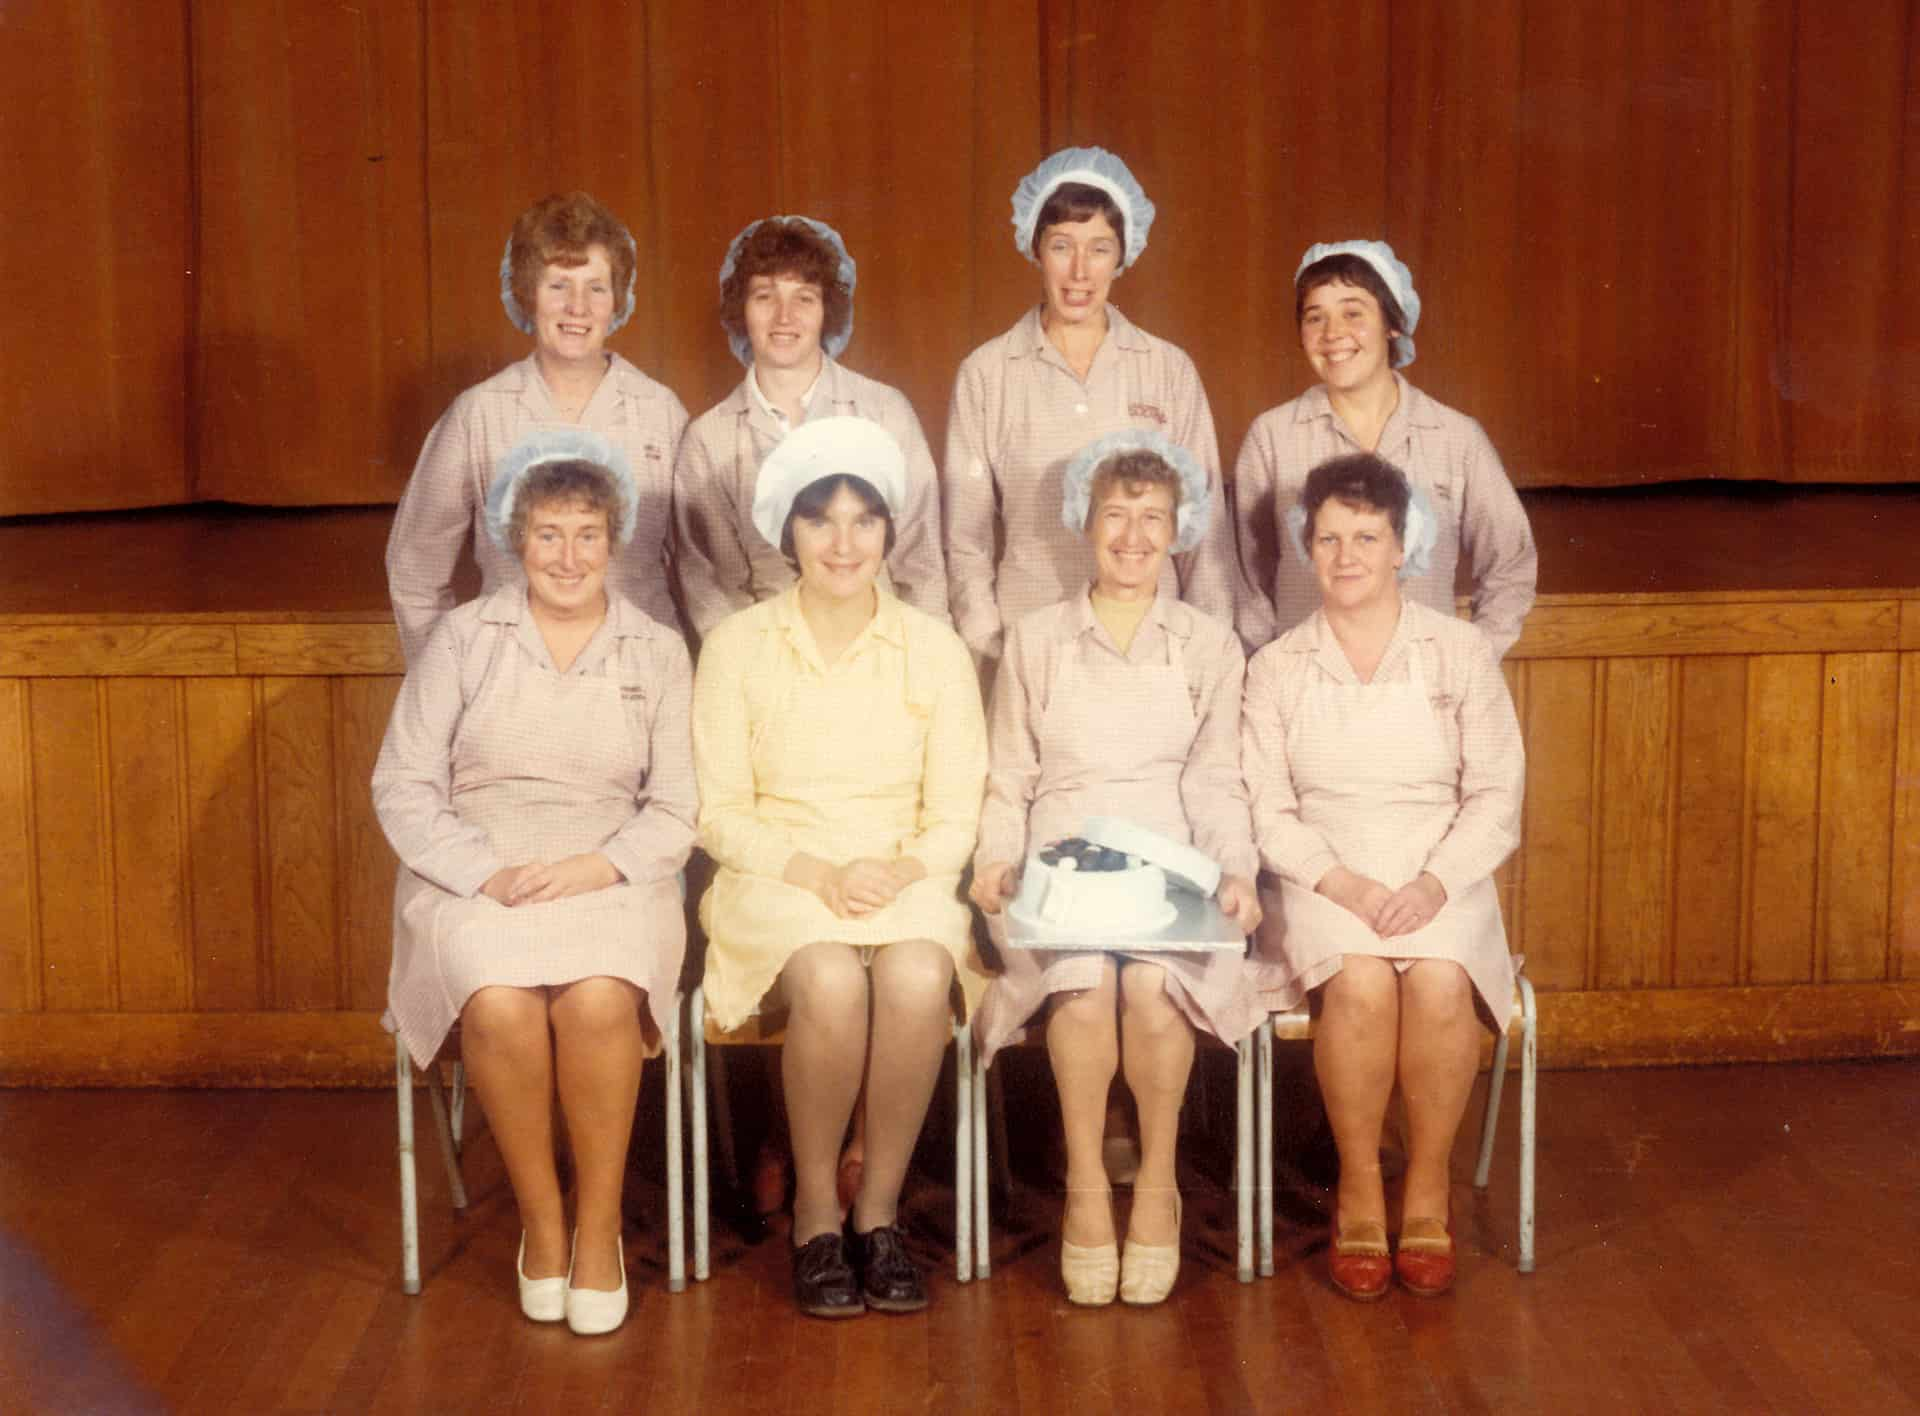 Lillian Hayes (holding the cake) at her retirement from Tividale Comprehensive School, 1979. Shared by Sandra Hughes.